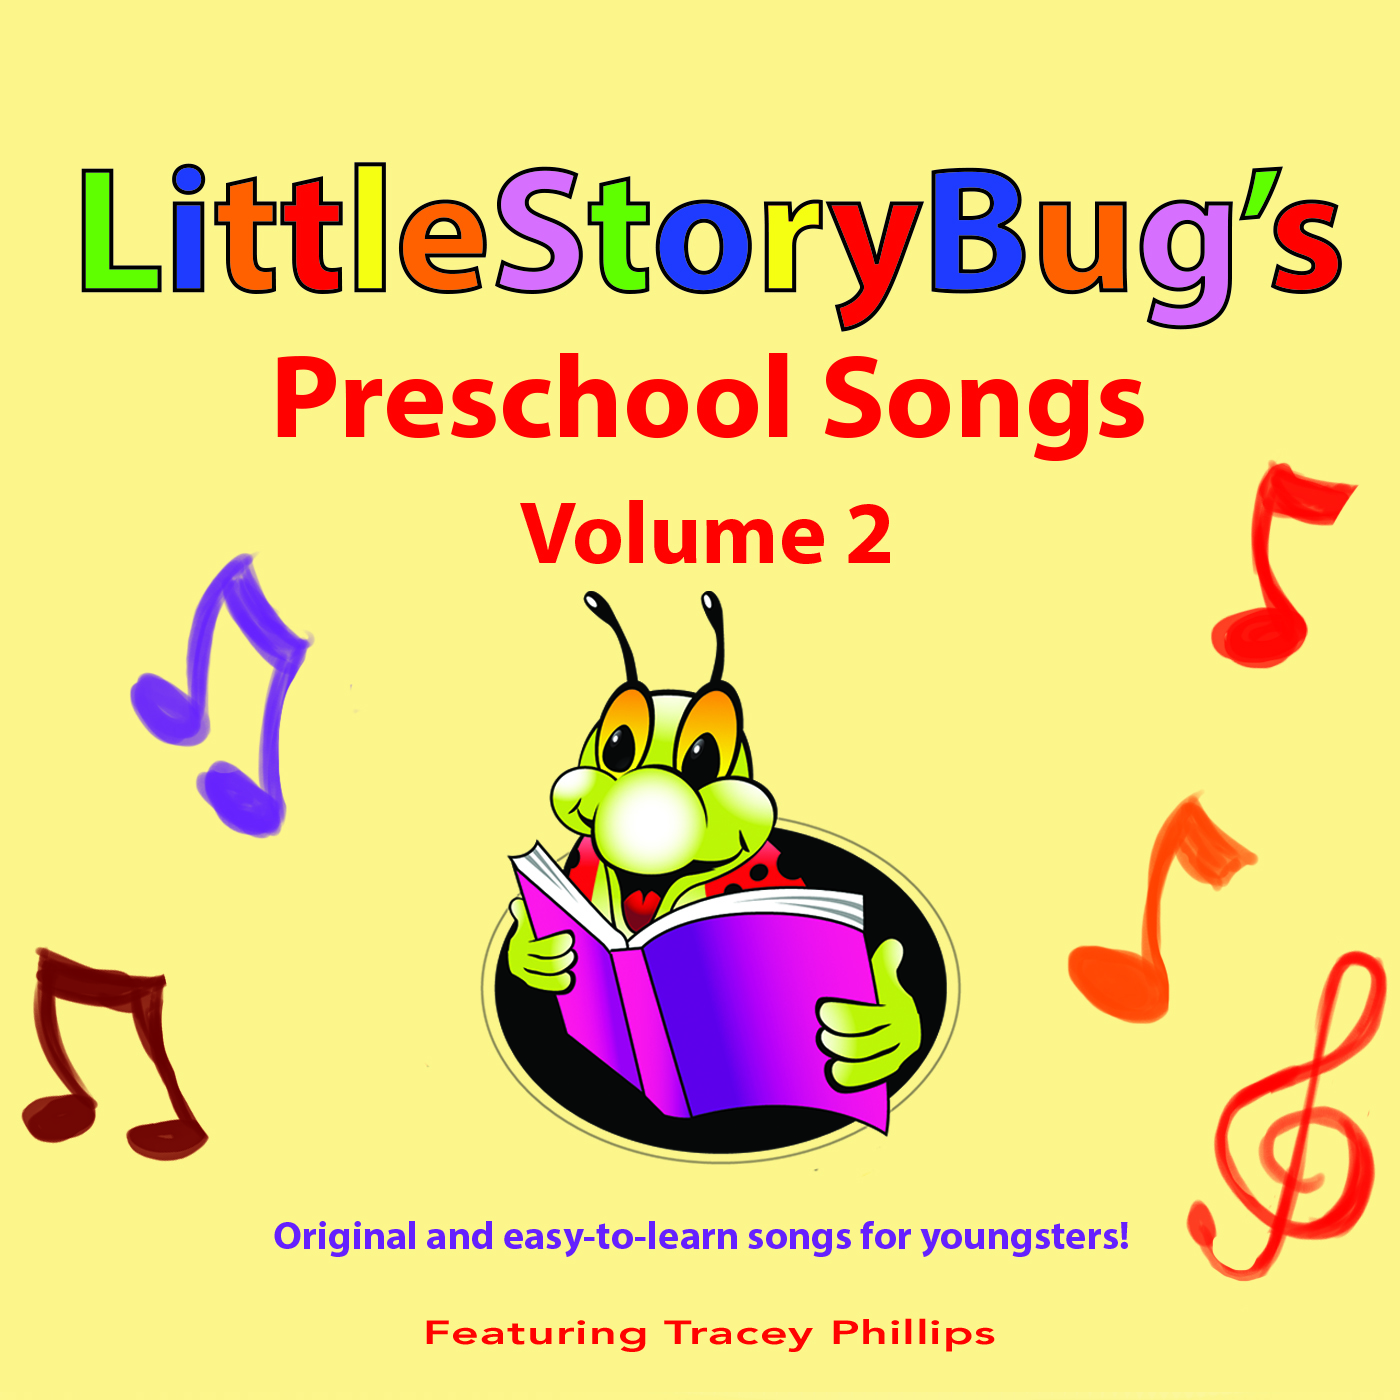 LittleStoryBug's Preschool Songs Volume 2